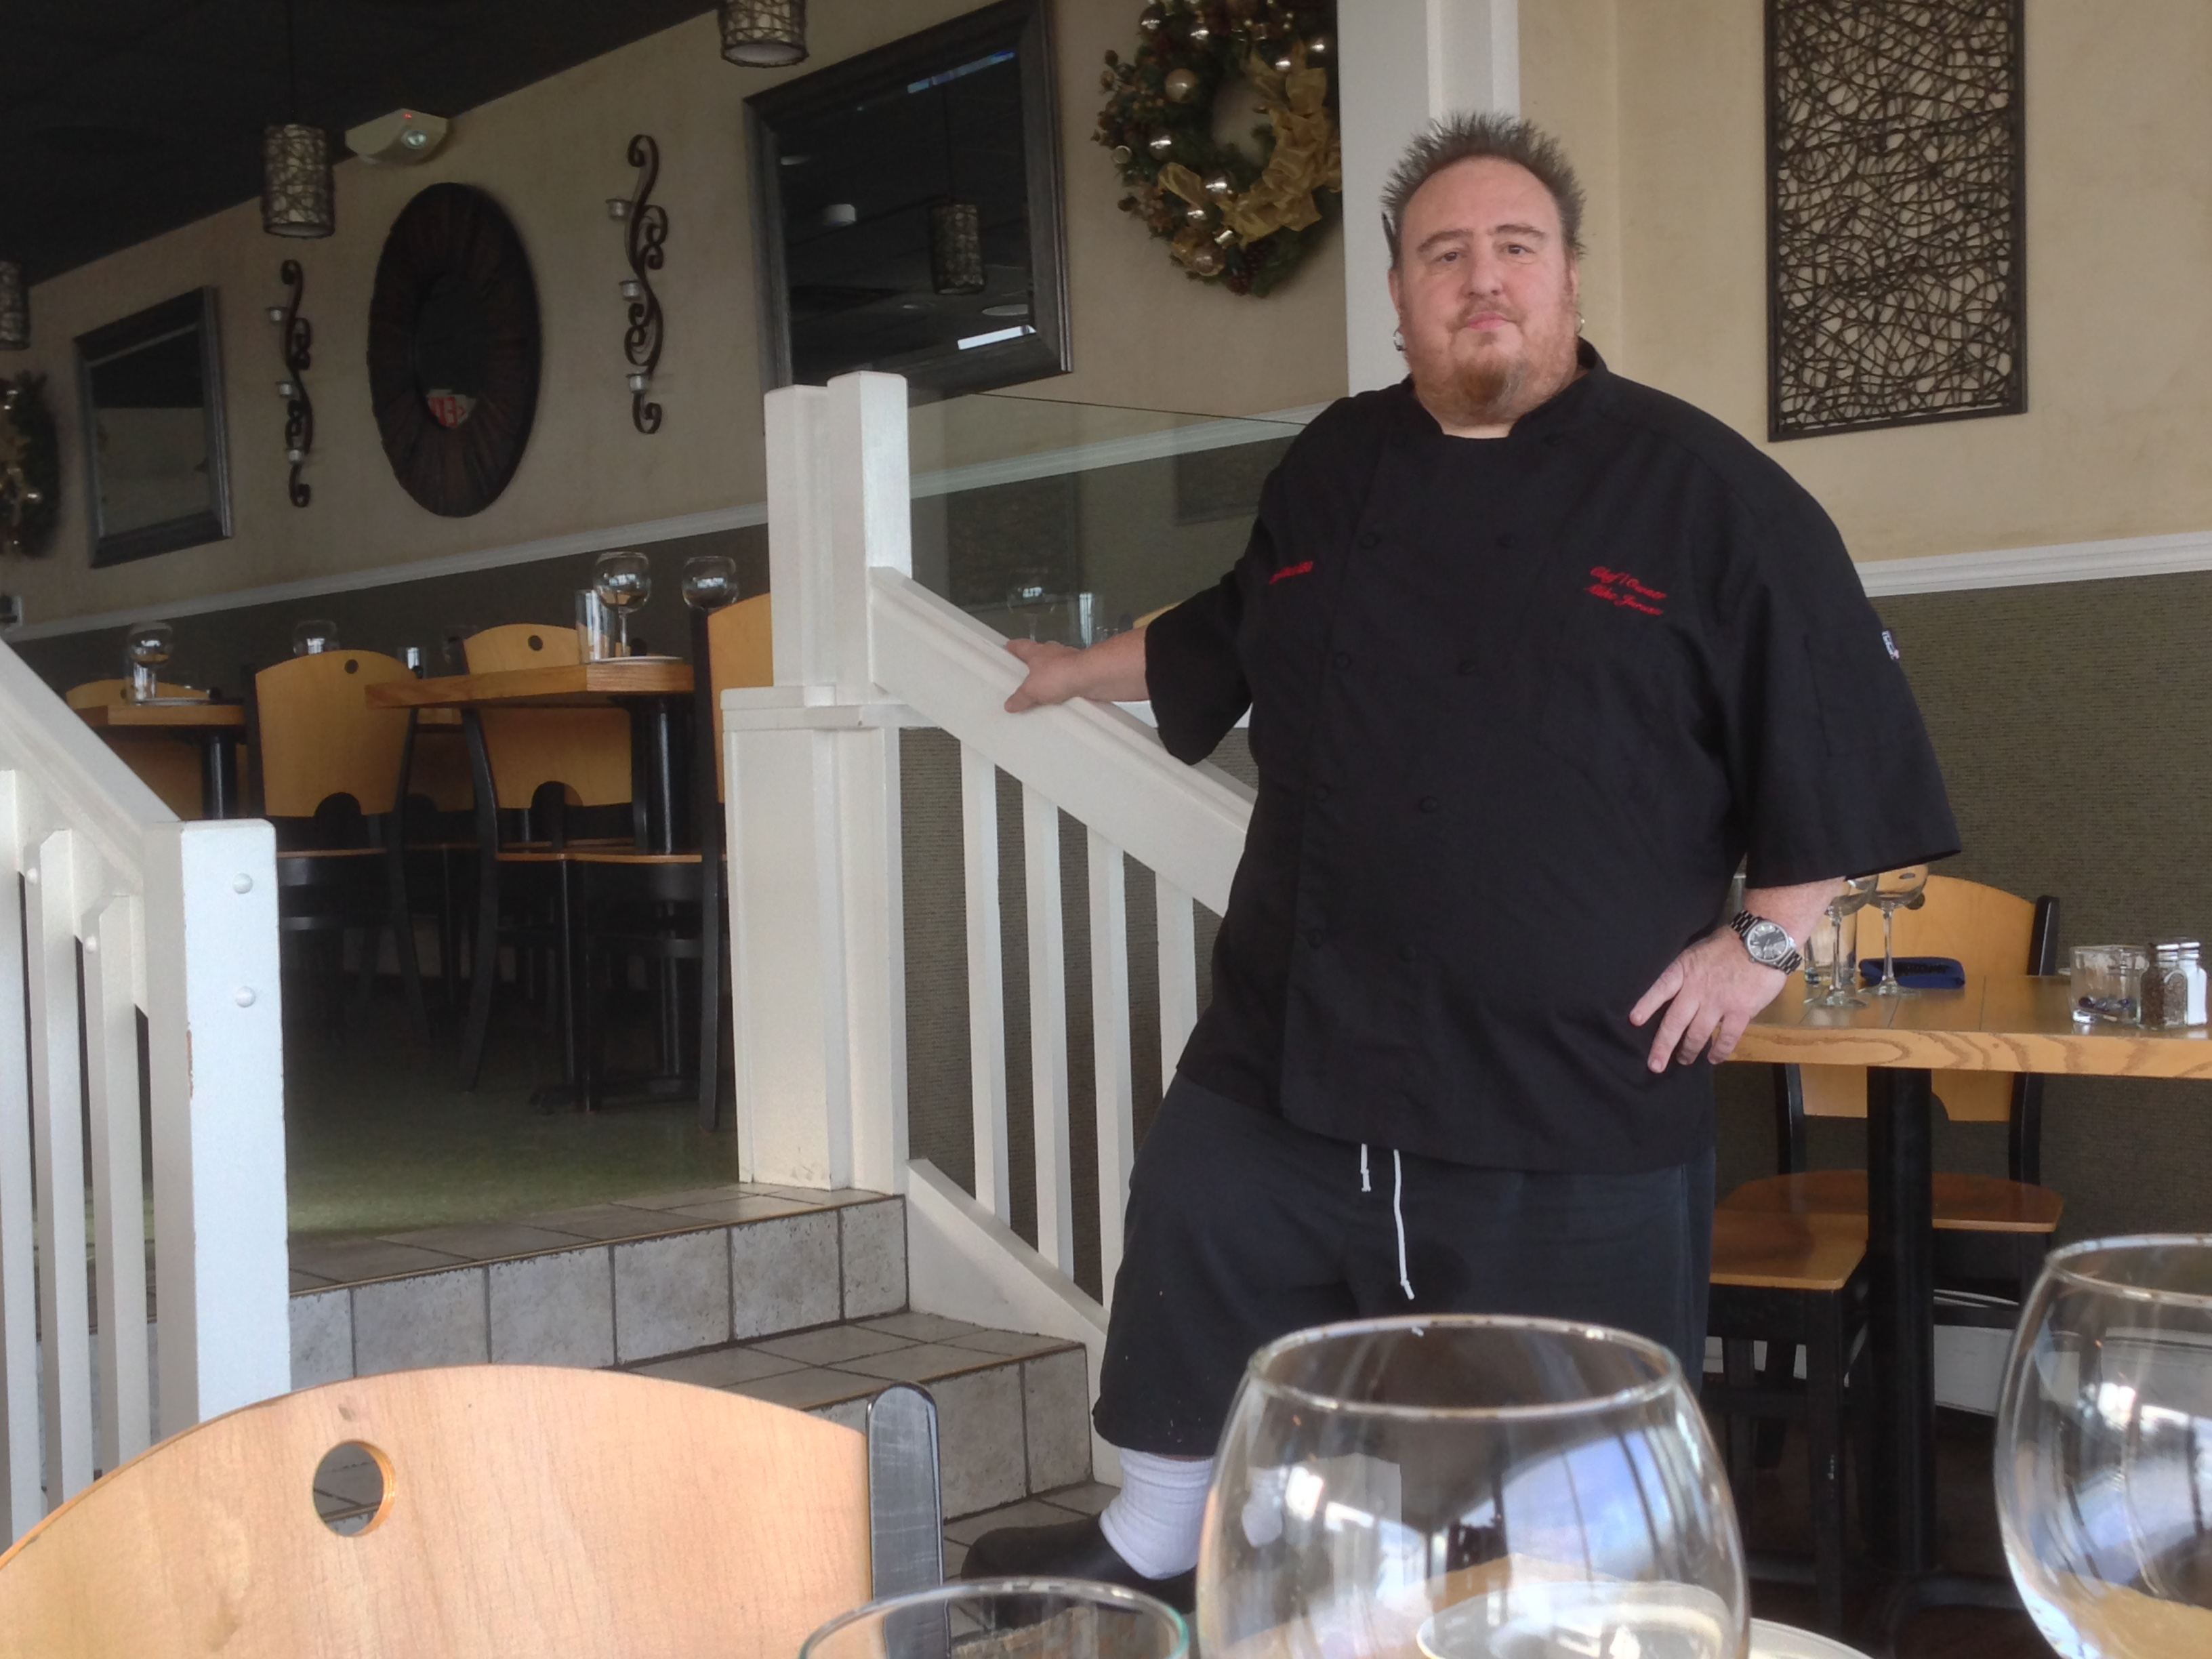 Chef Mike Jurusz, owner of Chef Mike's ABG in South Seaside Park. (Photo: Daniel Nee)